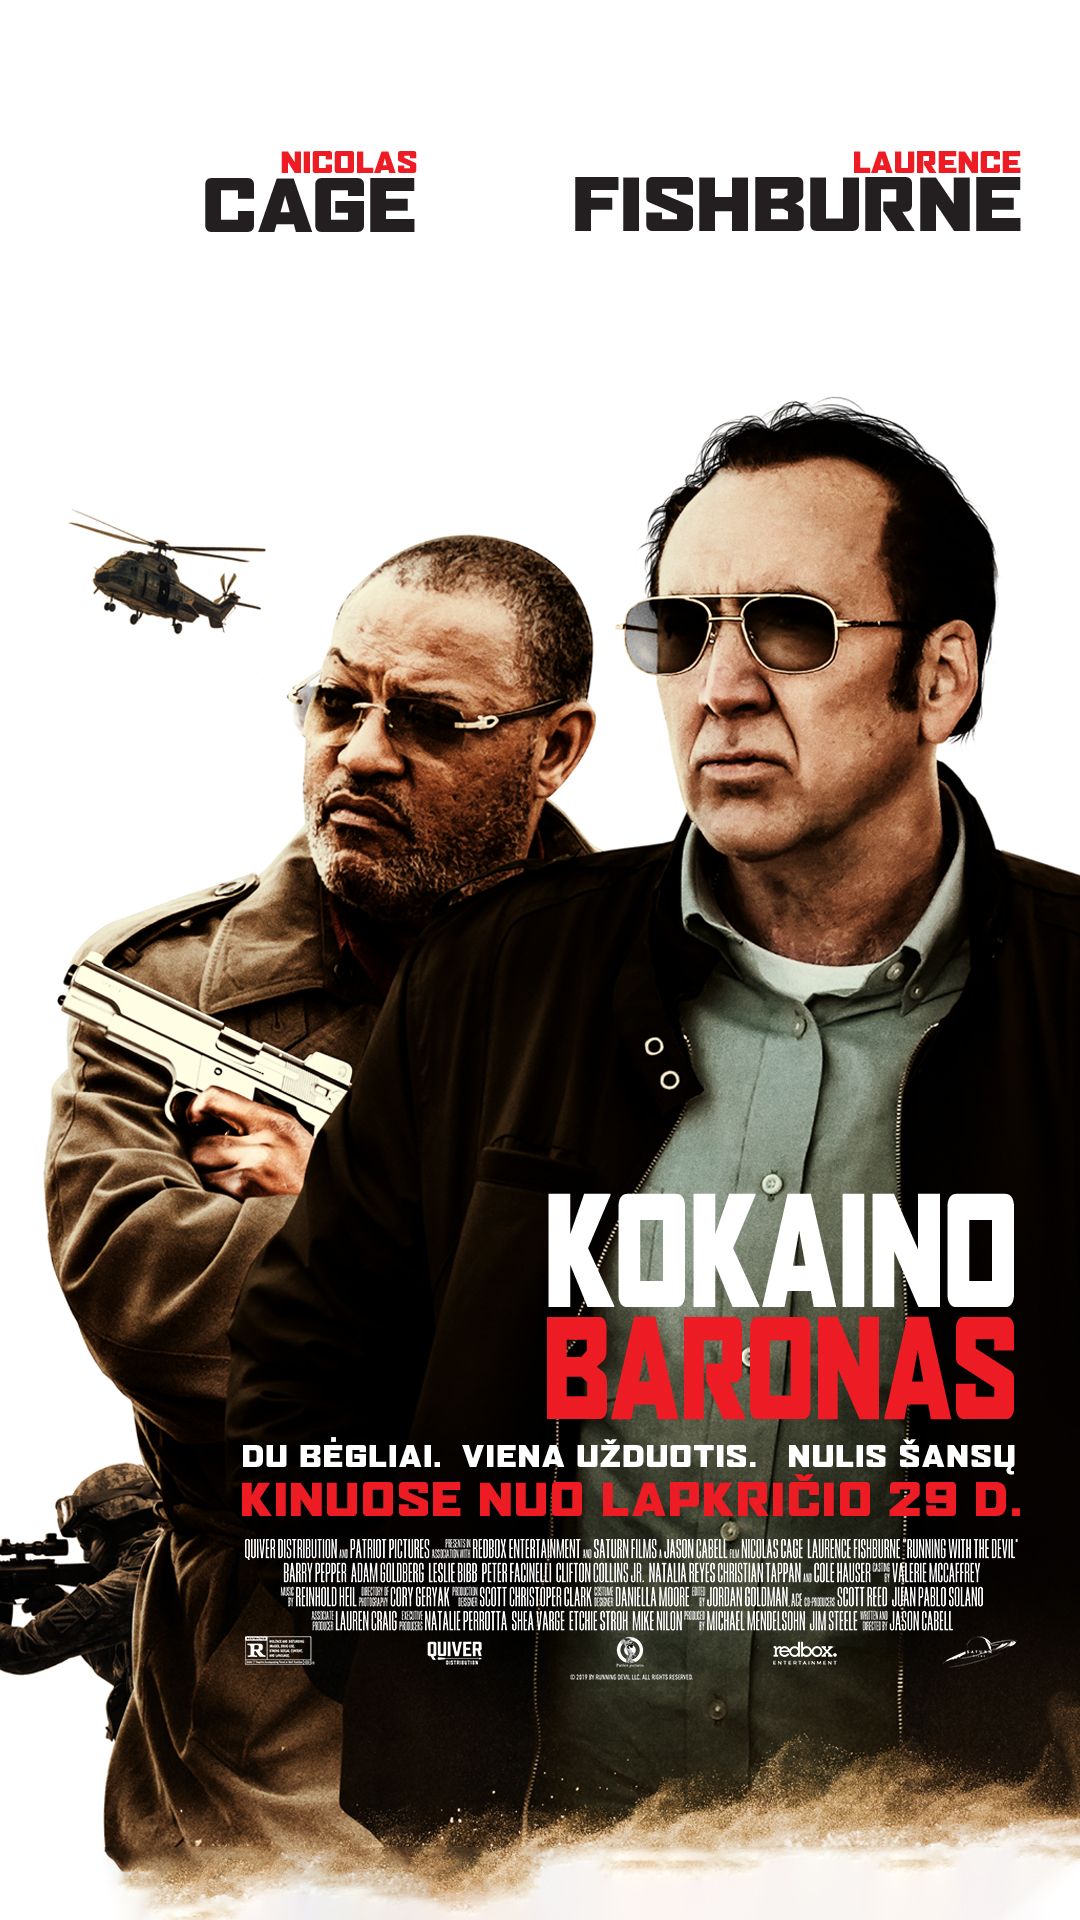 KOKAINO BARONAS (RUNNING WITH THE DEVIL)